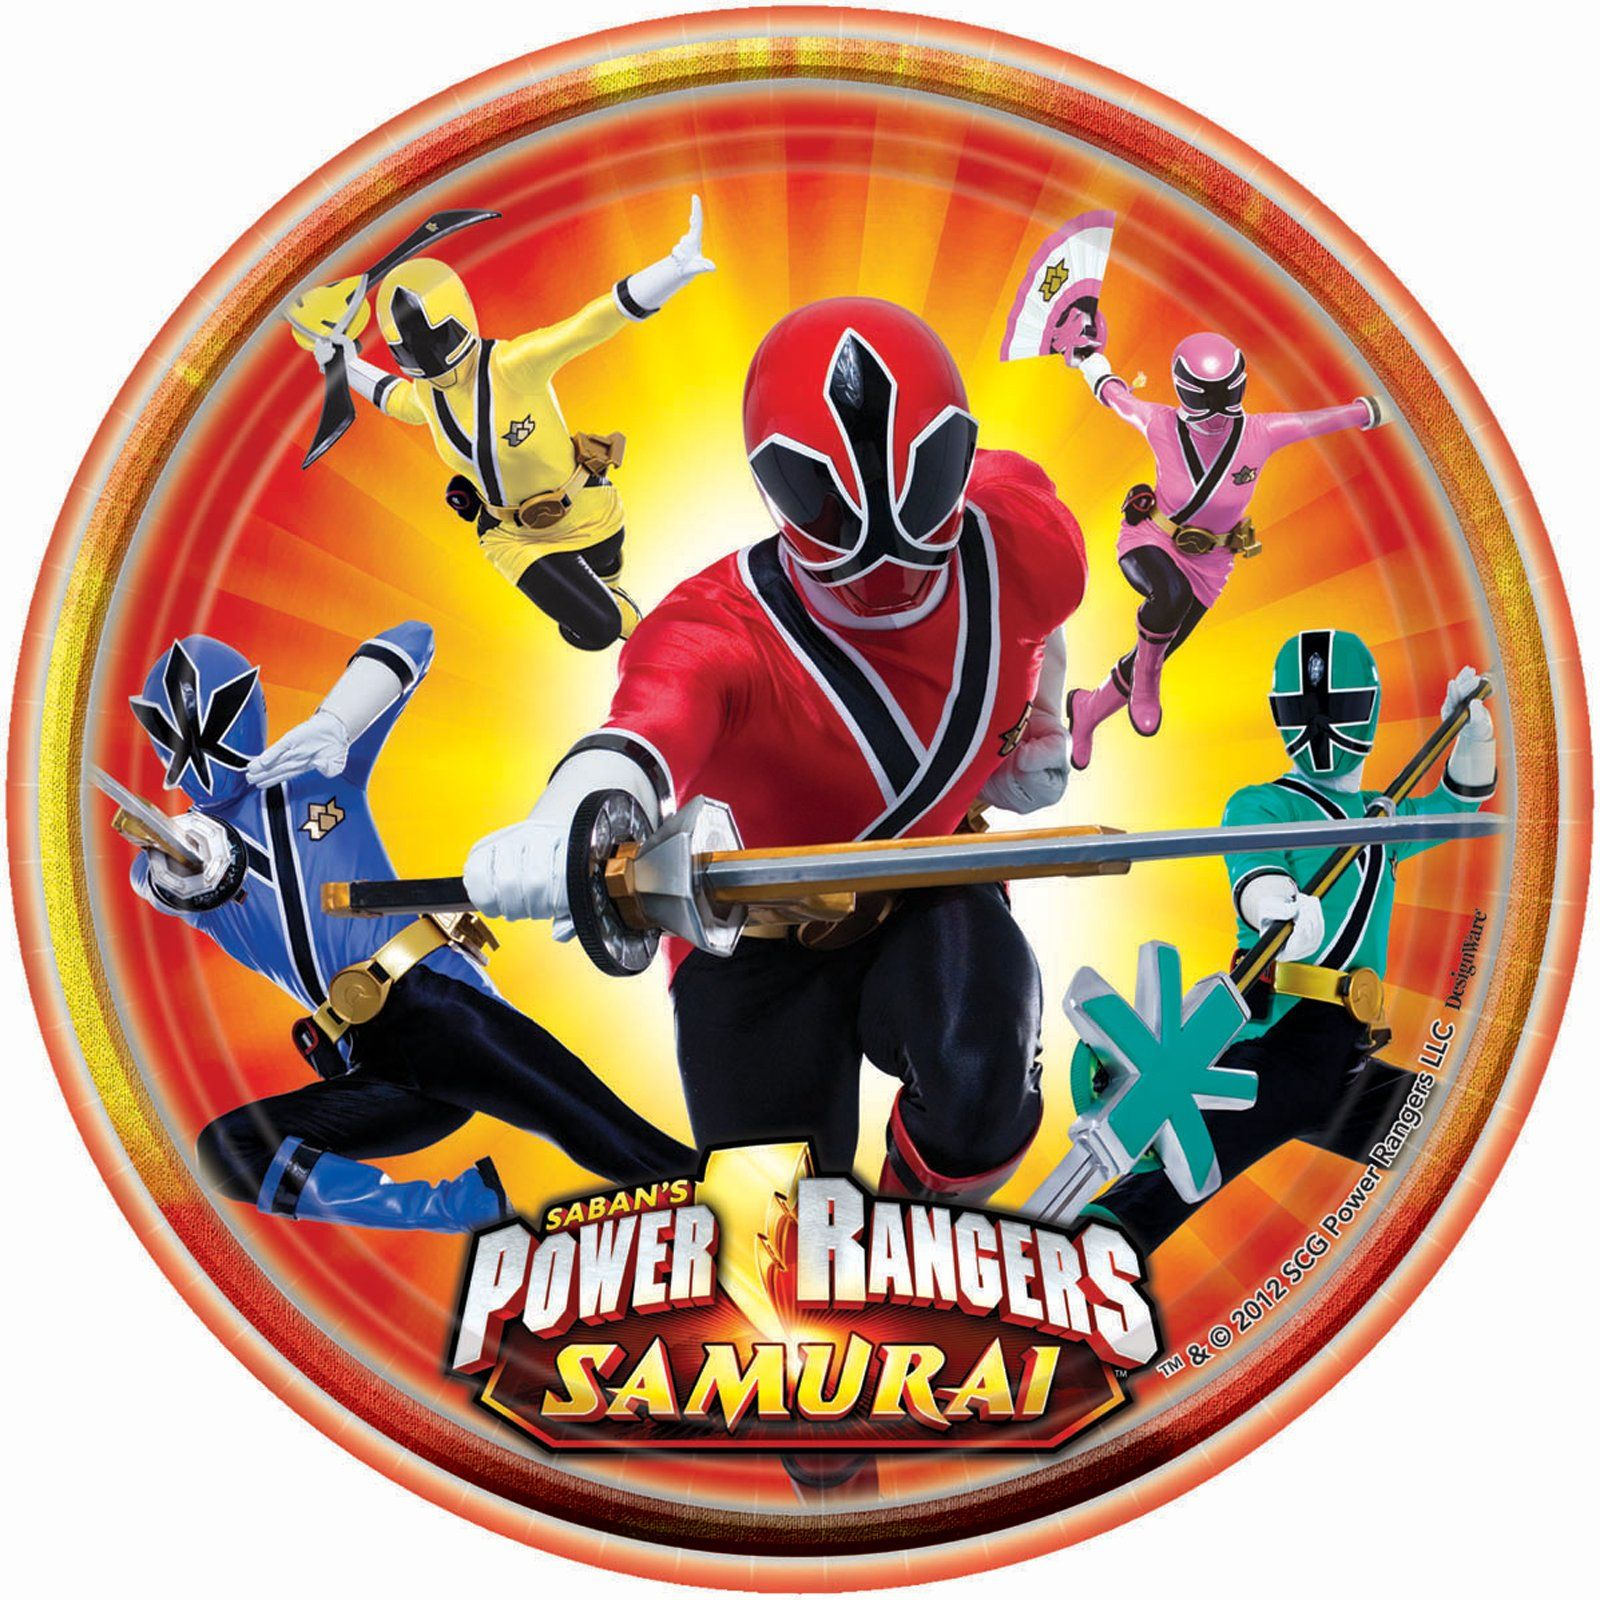 Power Ranger Samurai Plates | Power Rangers Samurai Party Ideas ...